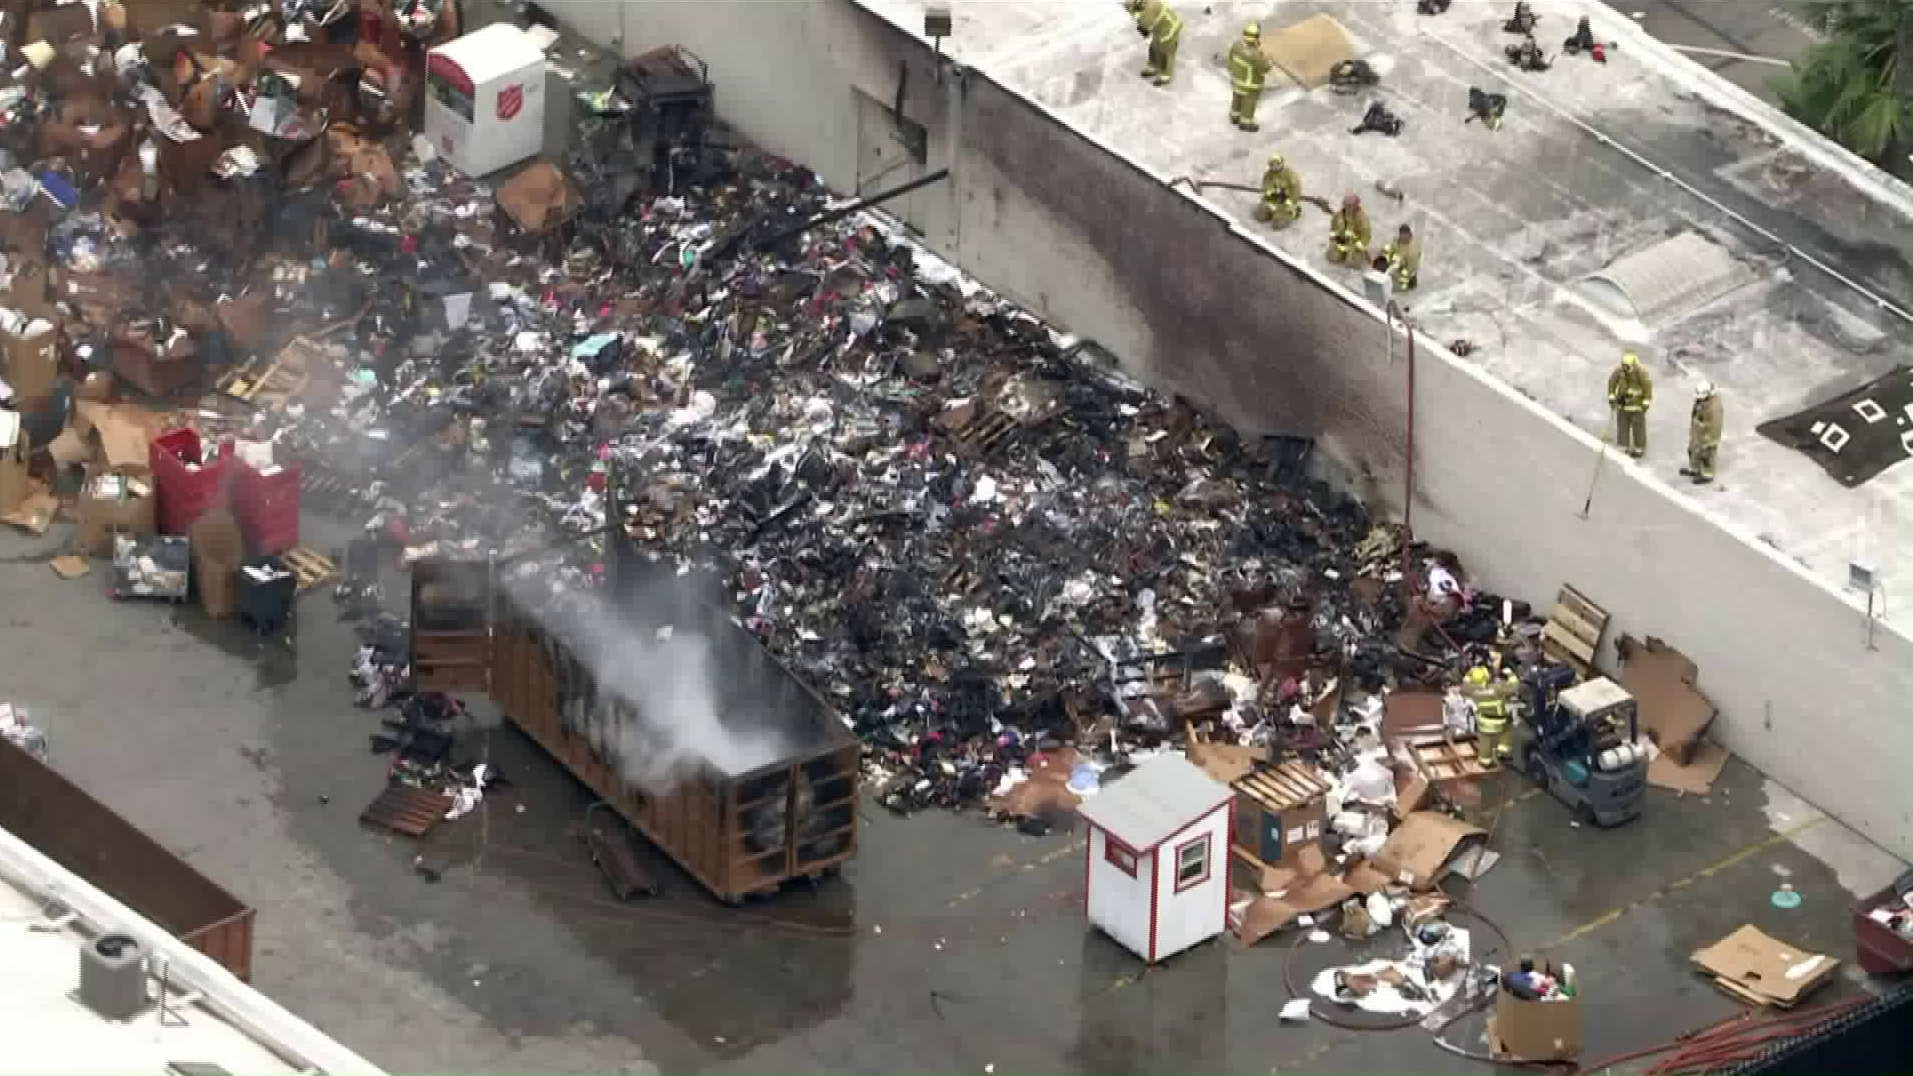 Piled up donations burned outside a Salvation Army store in Pasadena on June 17, 2020. (KTLA)